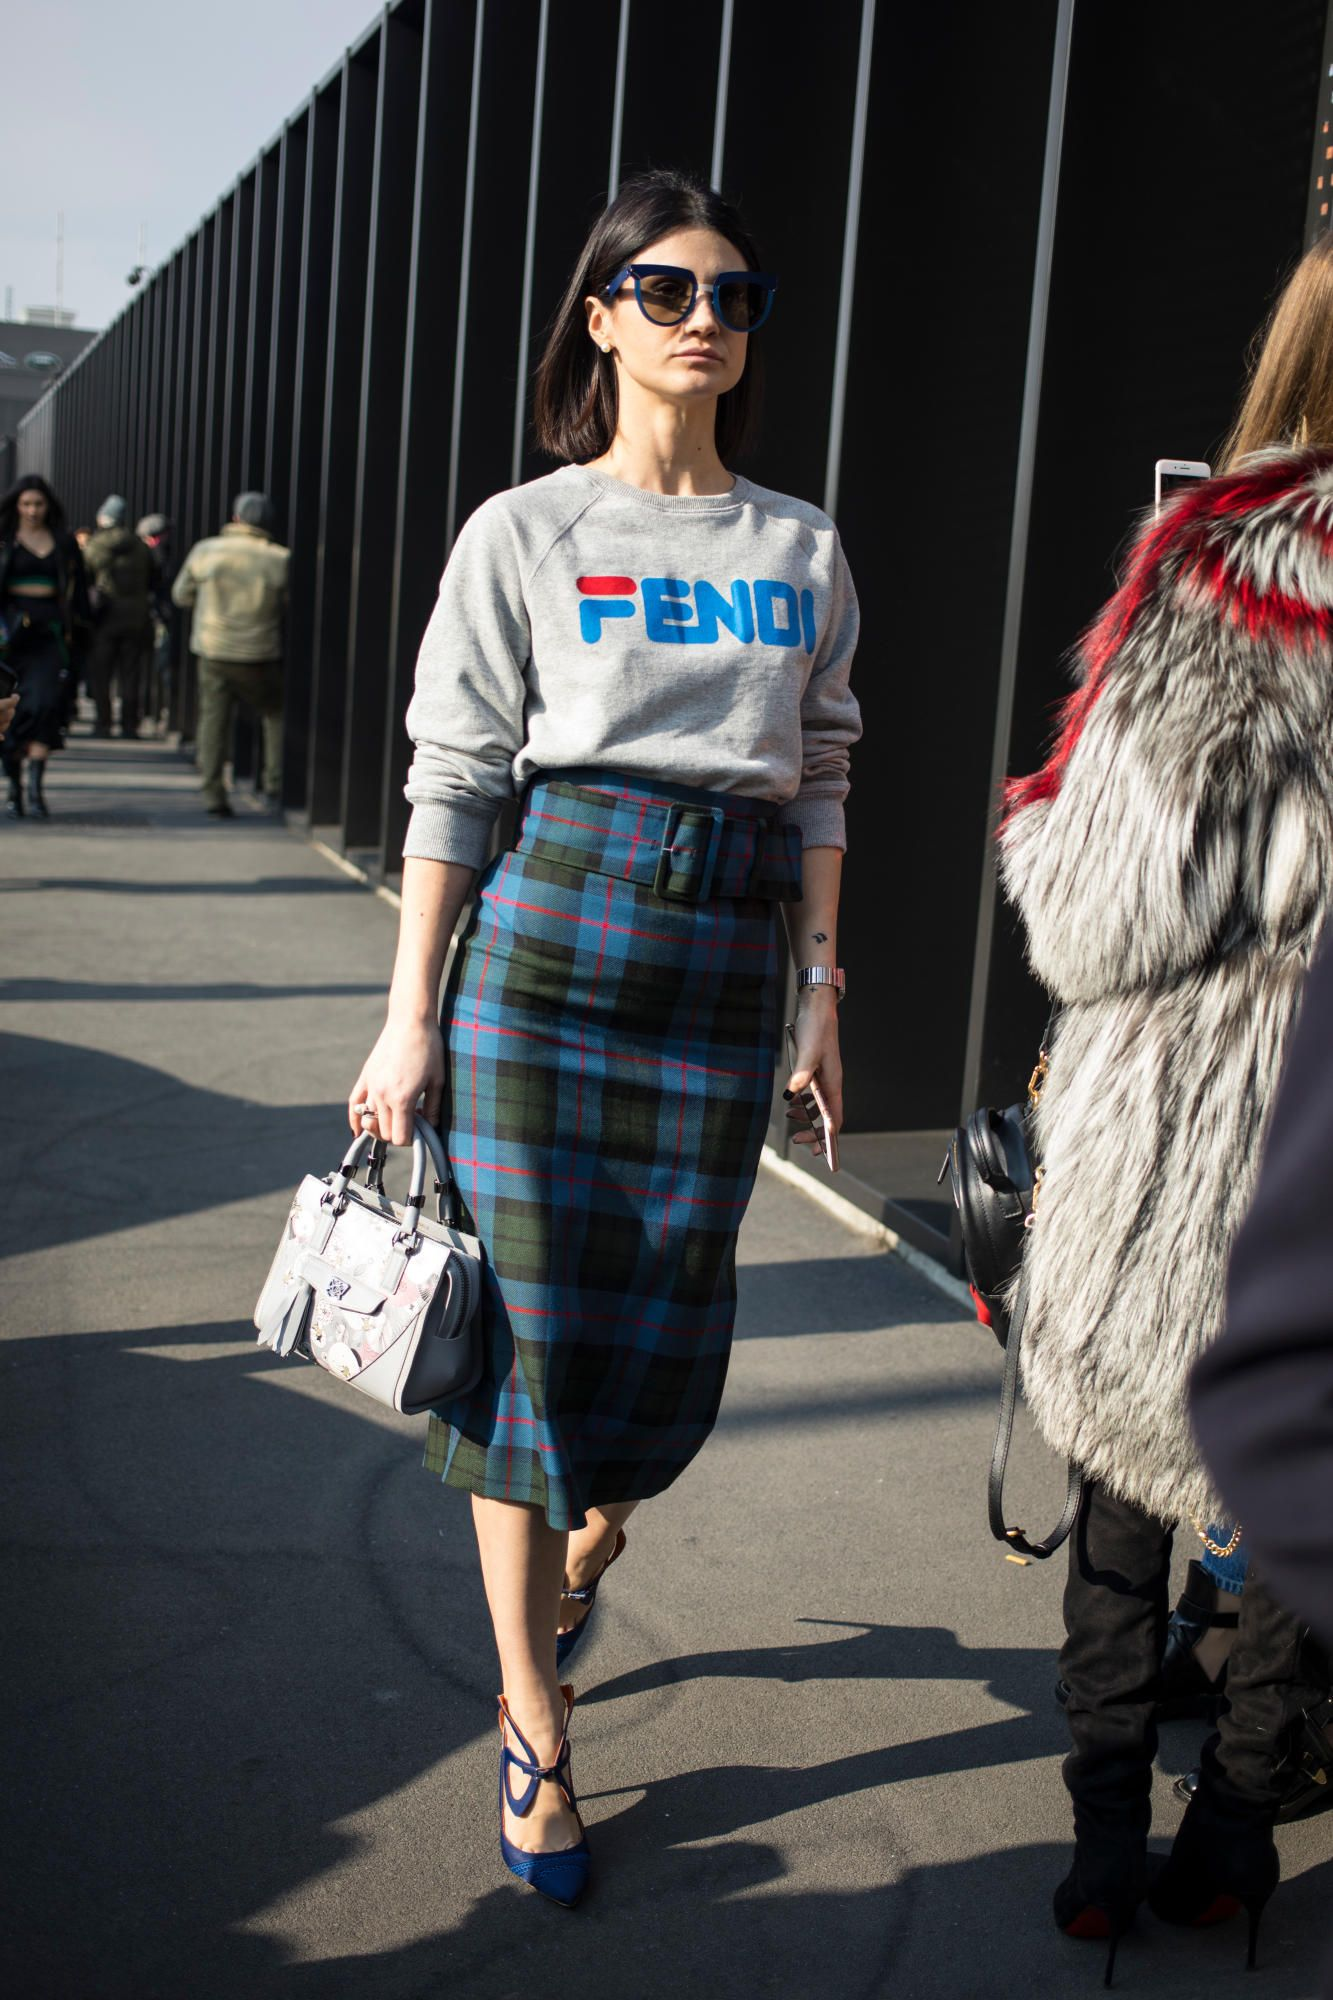 99 New Trends Bathroom Tile Design Inspiration 2017 31: Leopard Print And Gucci Logos Took Over Street Style On